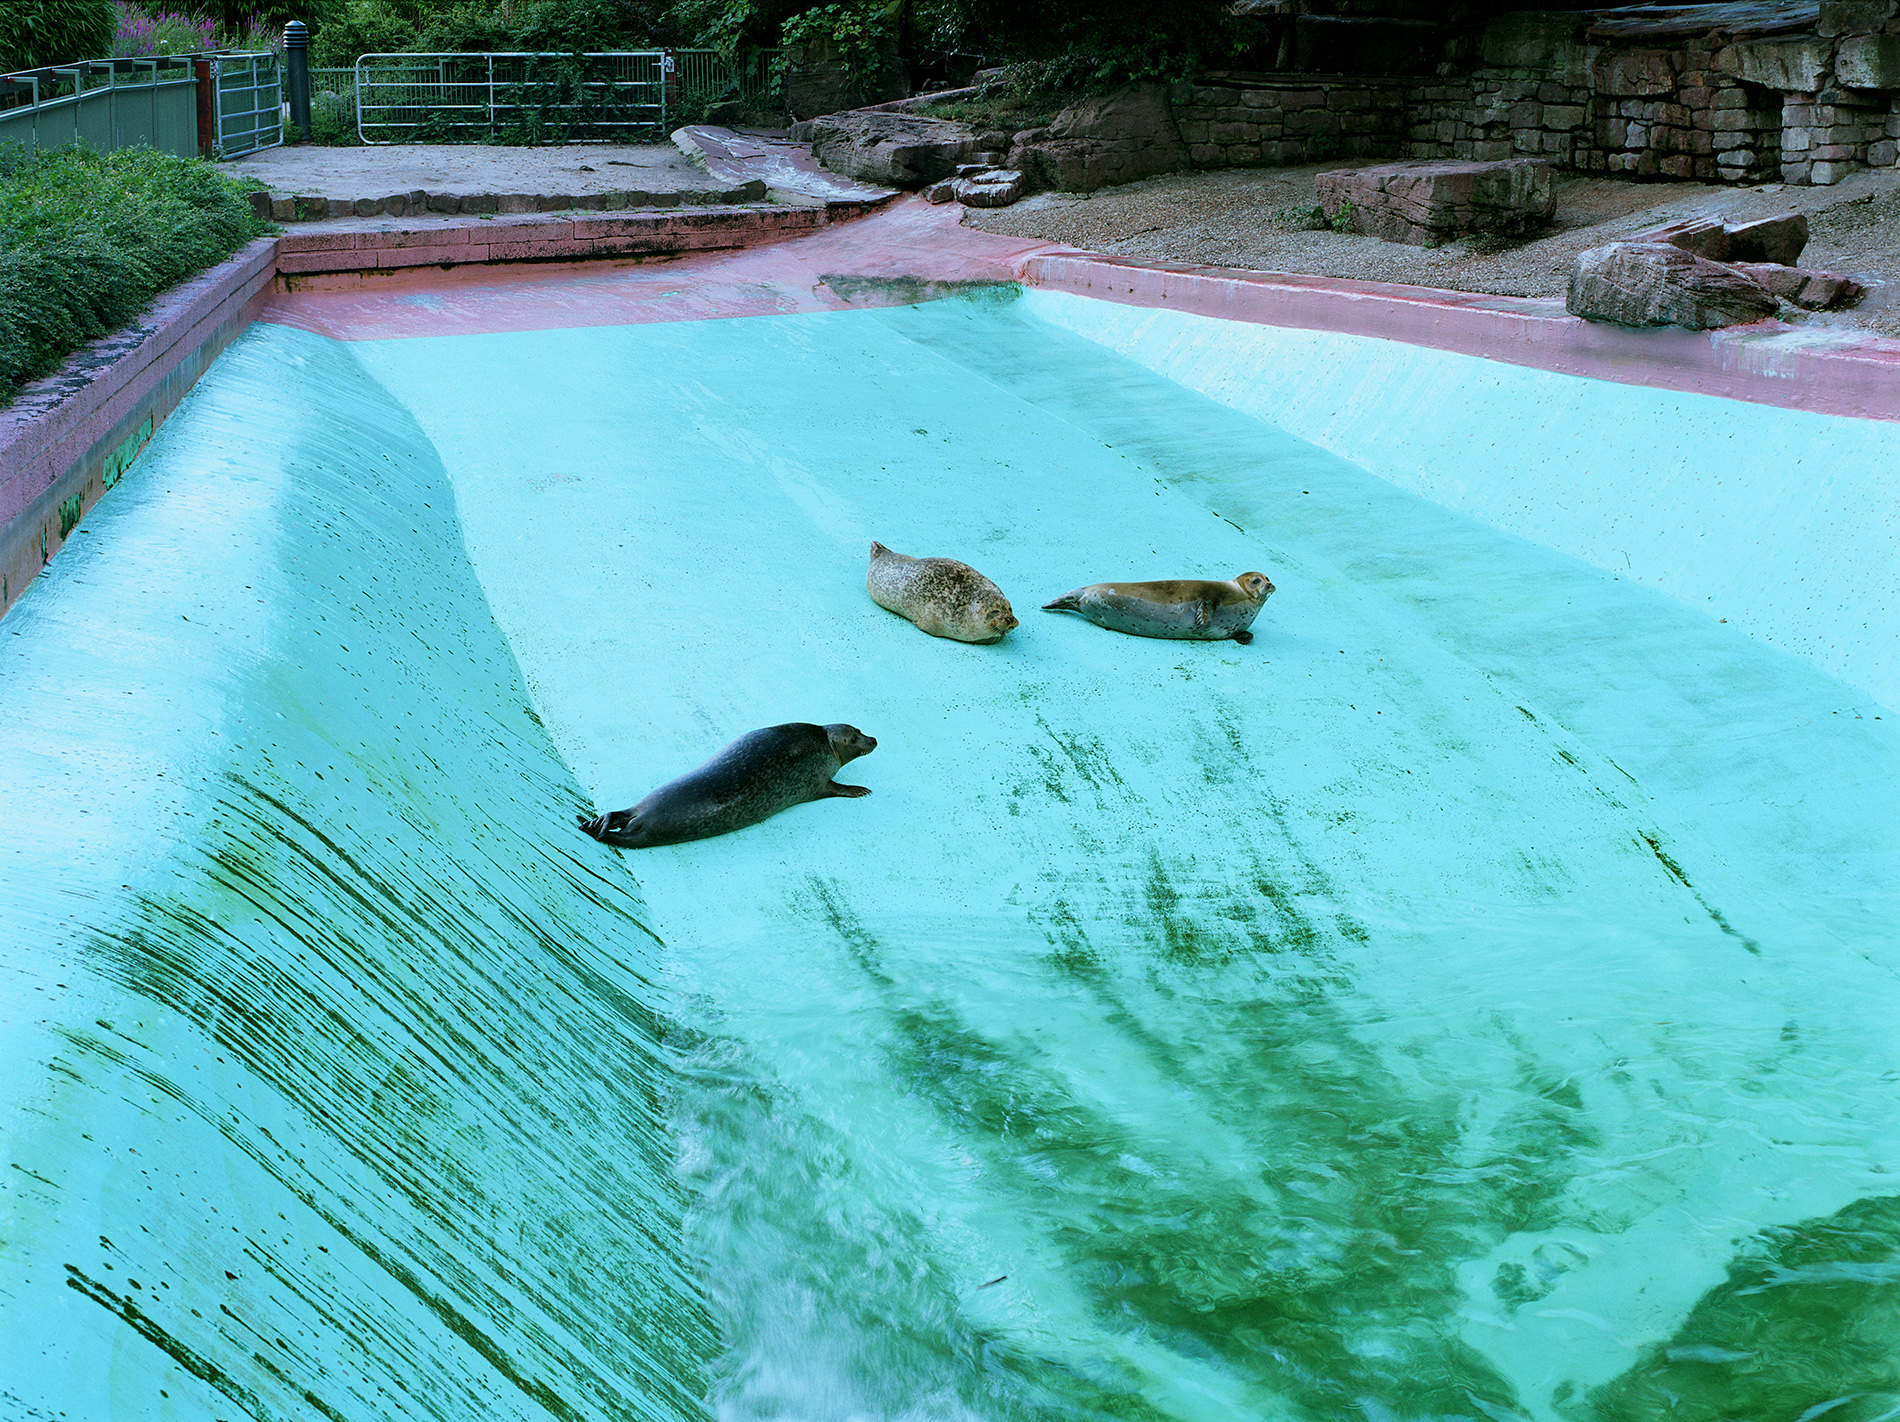 Seals at Karlsruhe Zoo